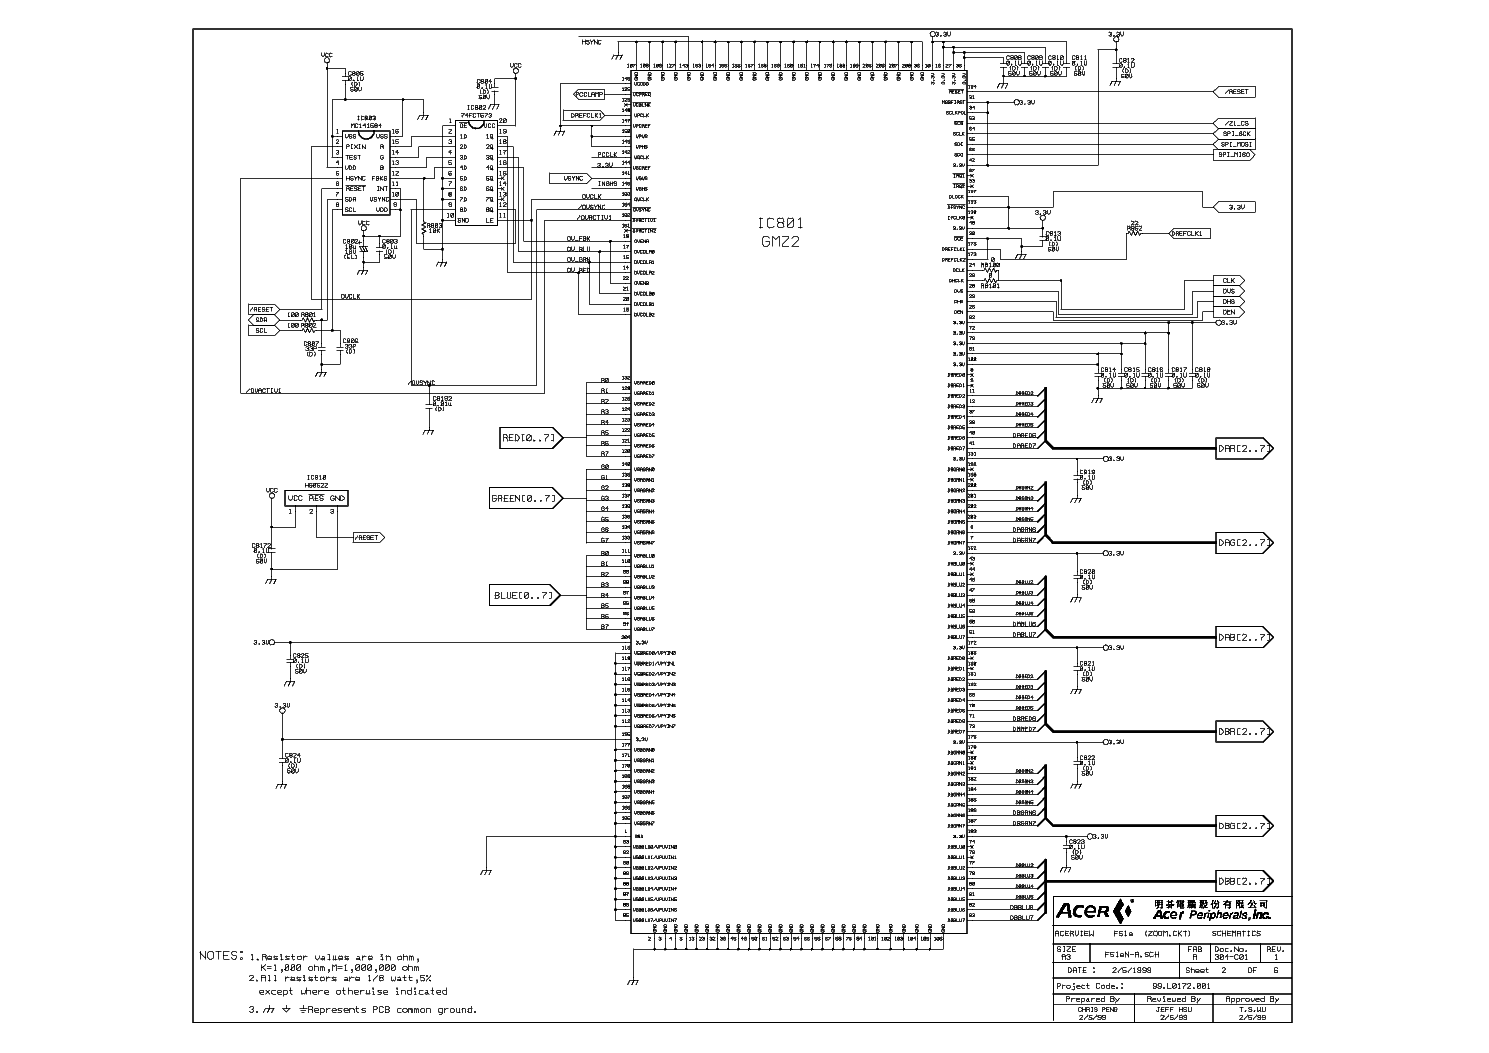 ACER ACERVIEW F51E SCH Service Manual download, schematics, eeprom, repair info for electronics